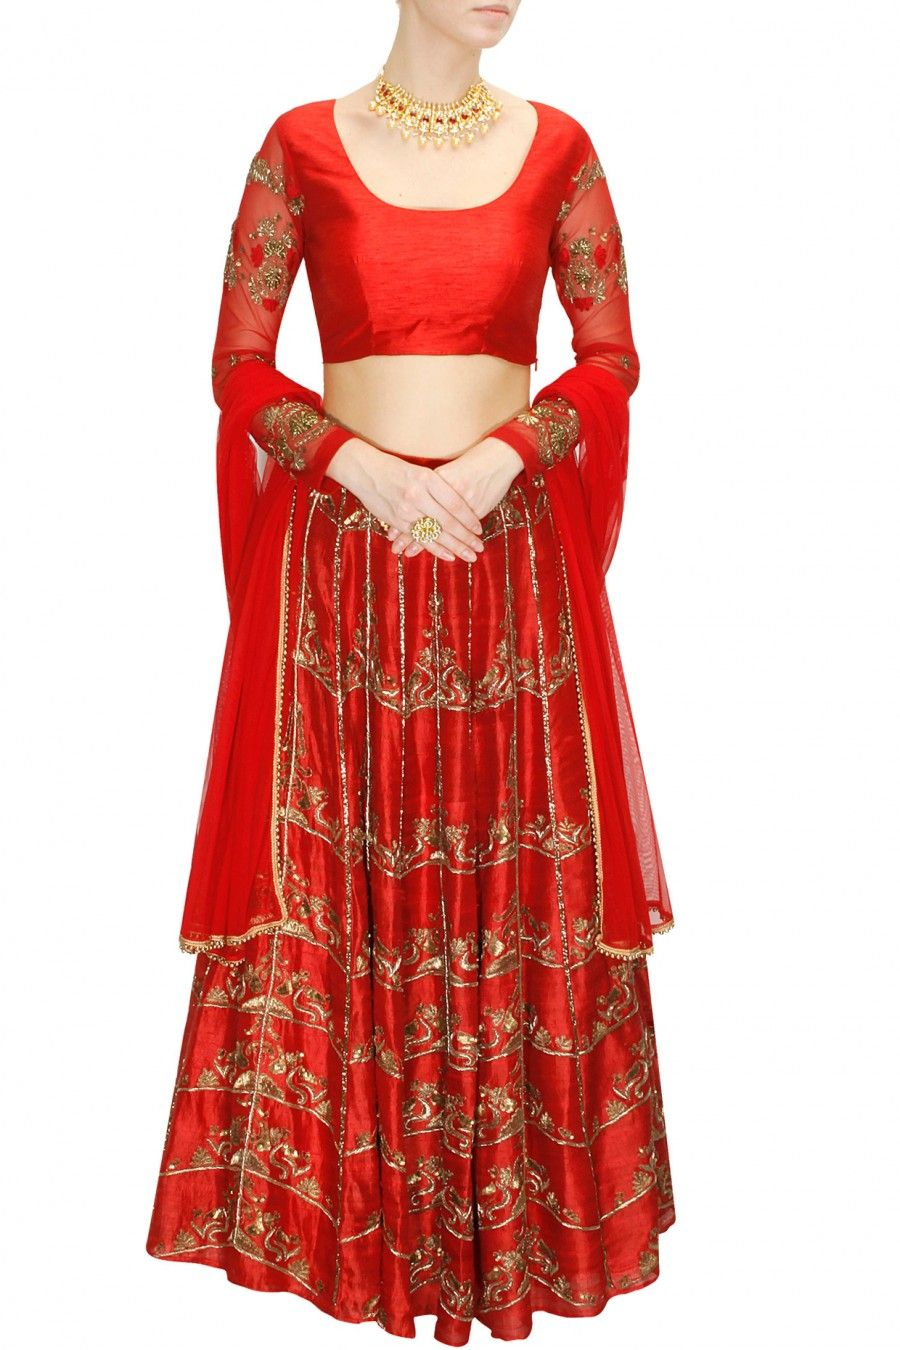 INTRODUCING Chilli red antique gold embroidered lehenga set by